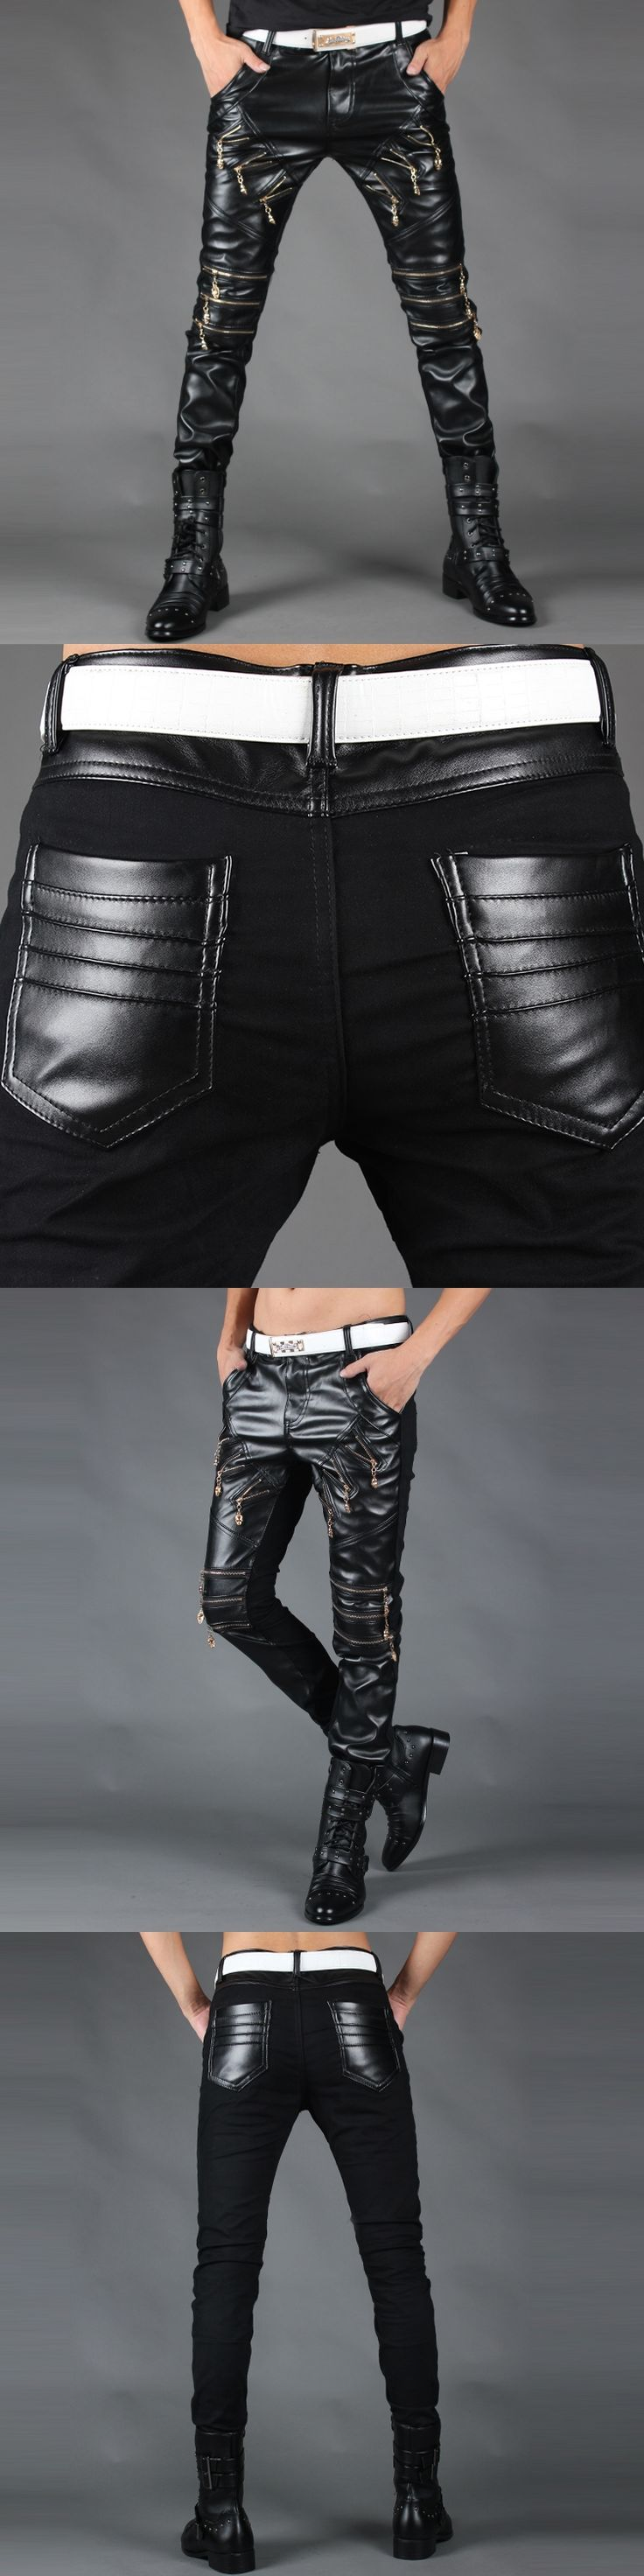 2017 spring and autumn new fashion personality tight-fitting nightclubs men's leather trousers men's self-cultivation leather tr